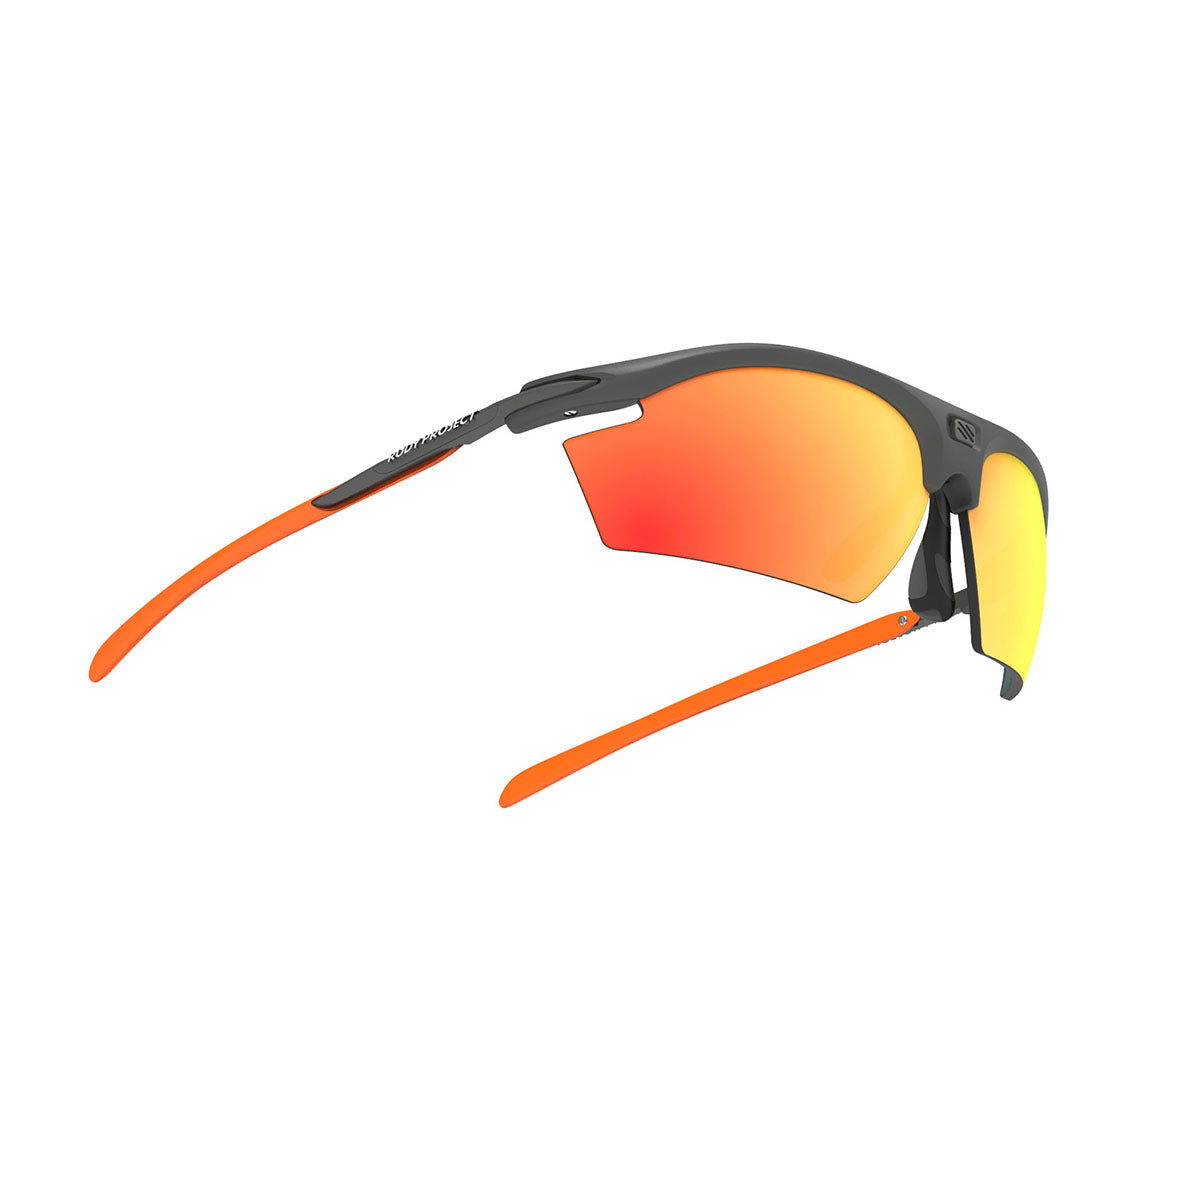 Rudy Project - Rydon - frame color: Graphite Multicolor Orange - lens color: Multilaser Orange - photo angle: Bottom Front Angle Variant Hover Image